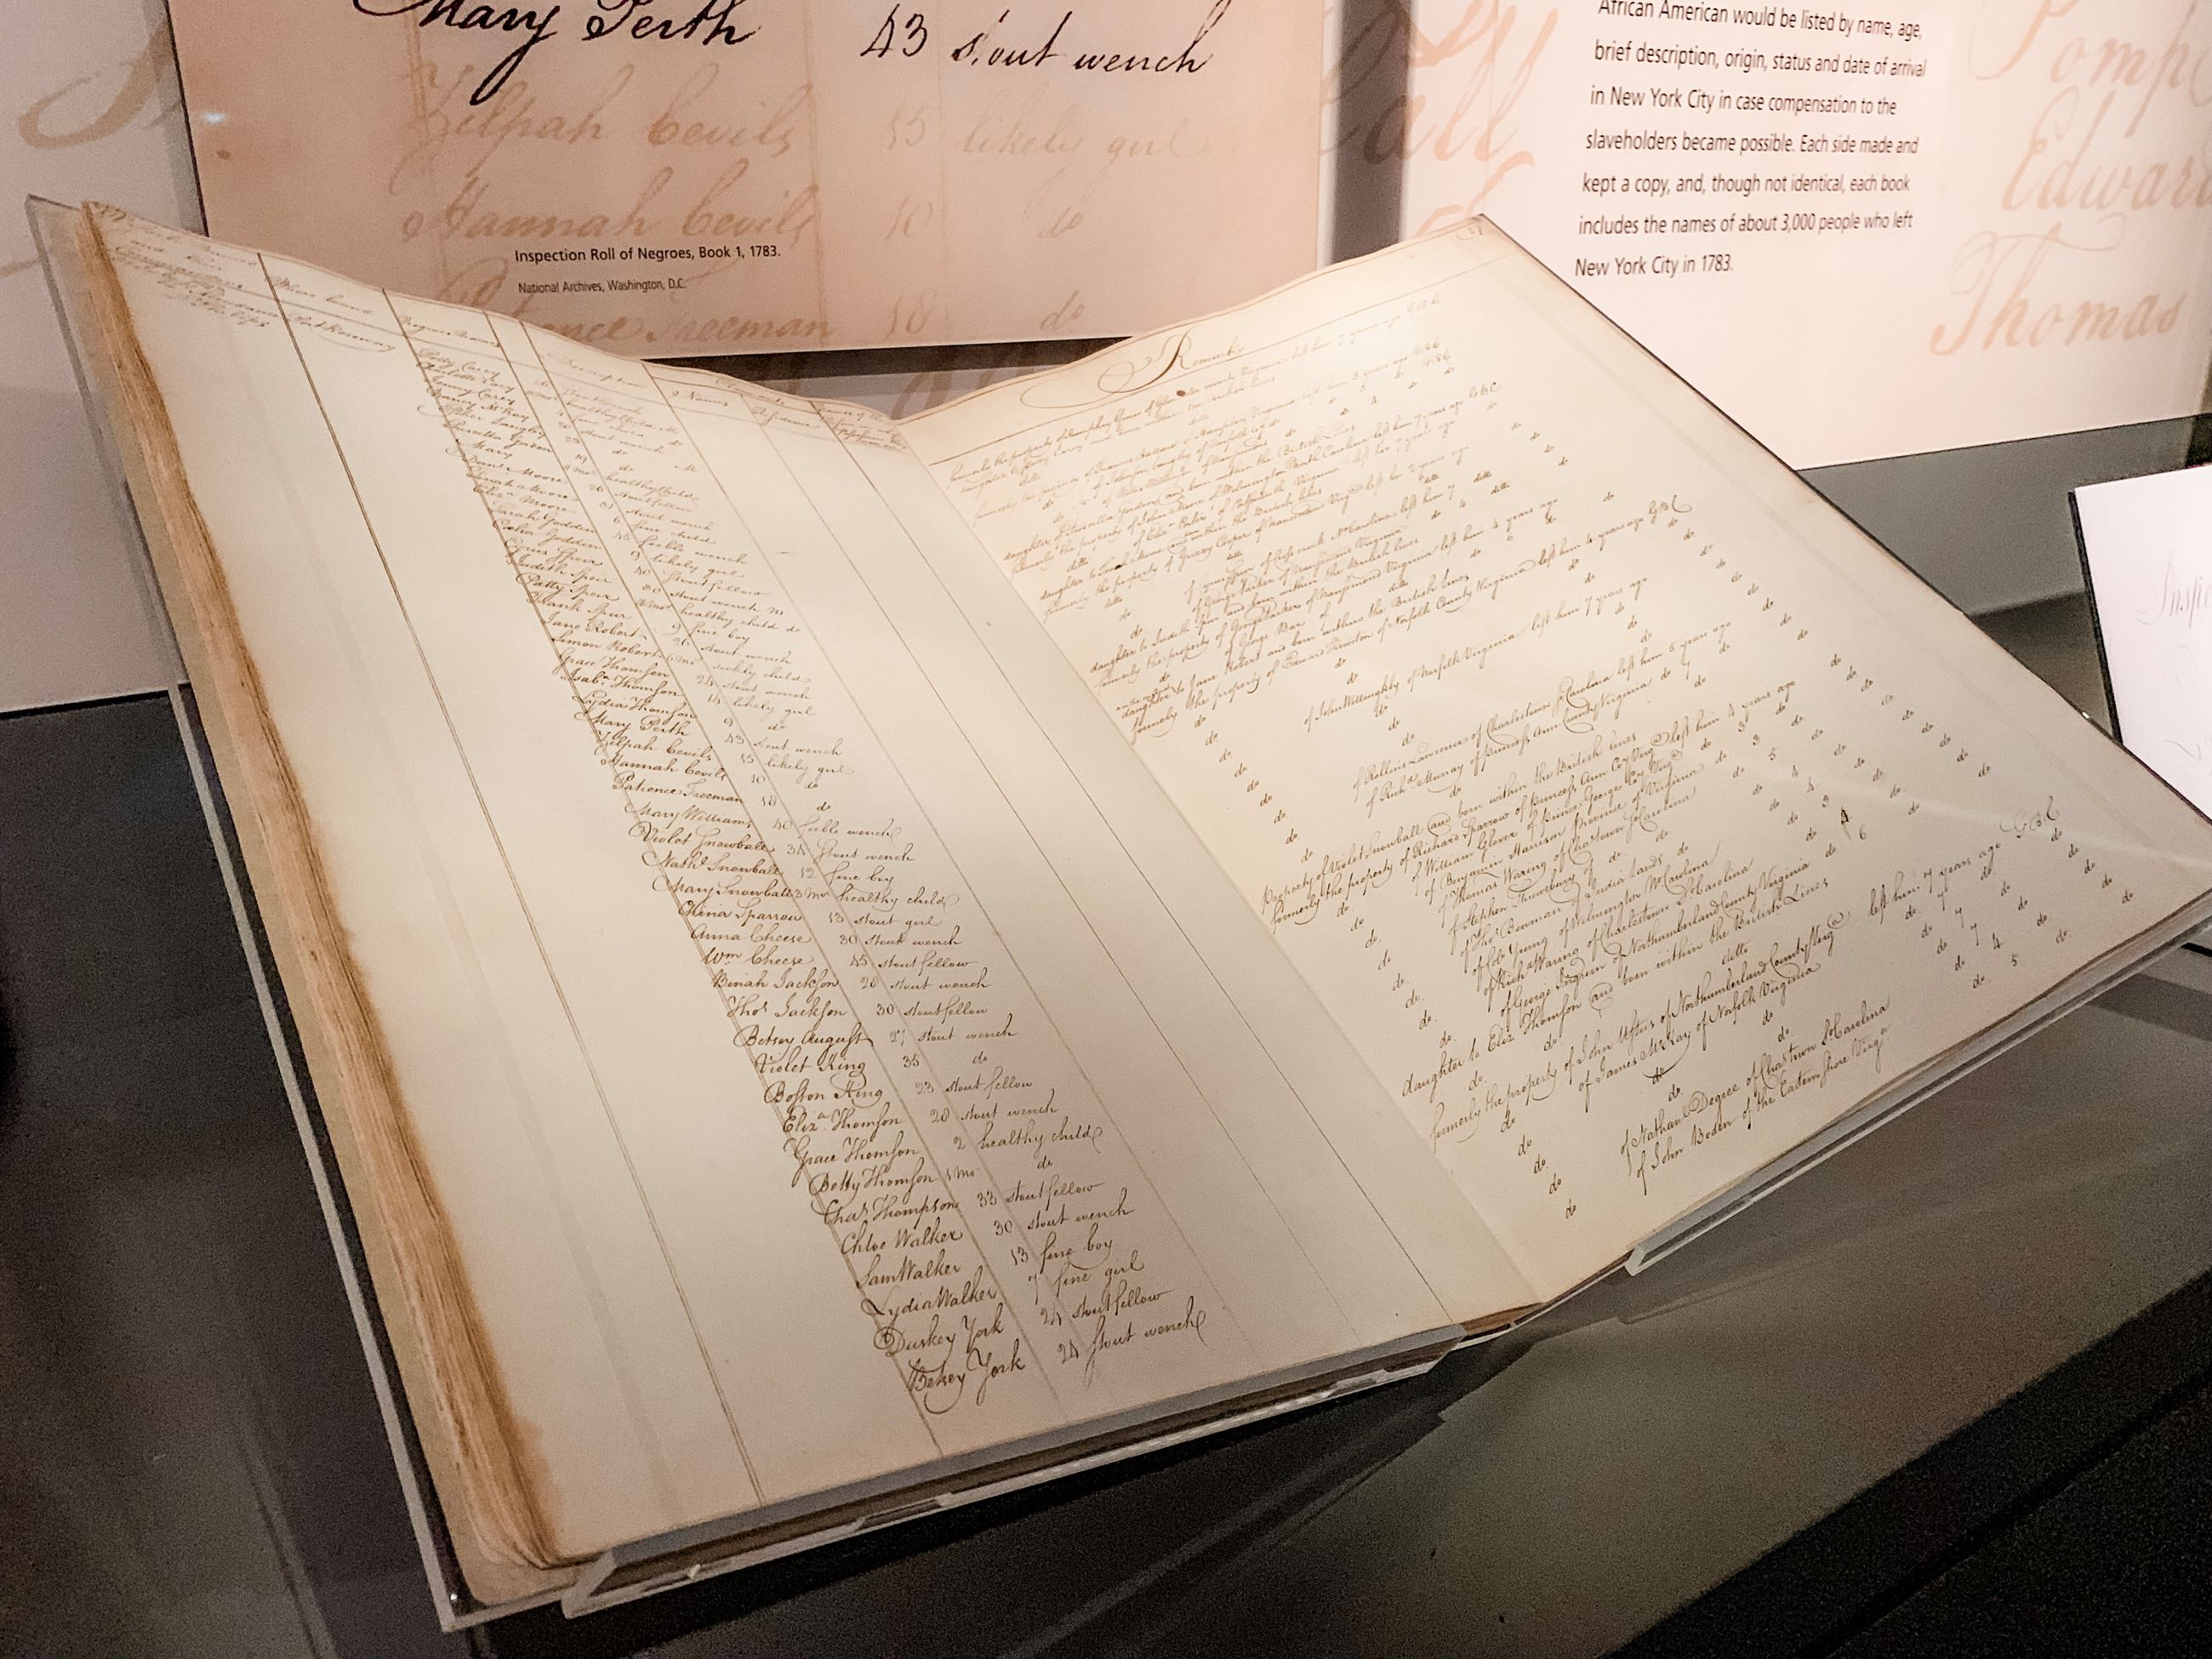 Book of Negroes on loan from the National Archives of the United Kingdom